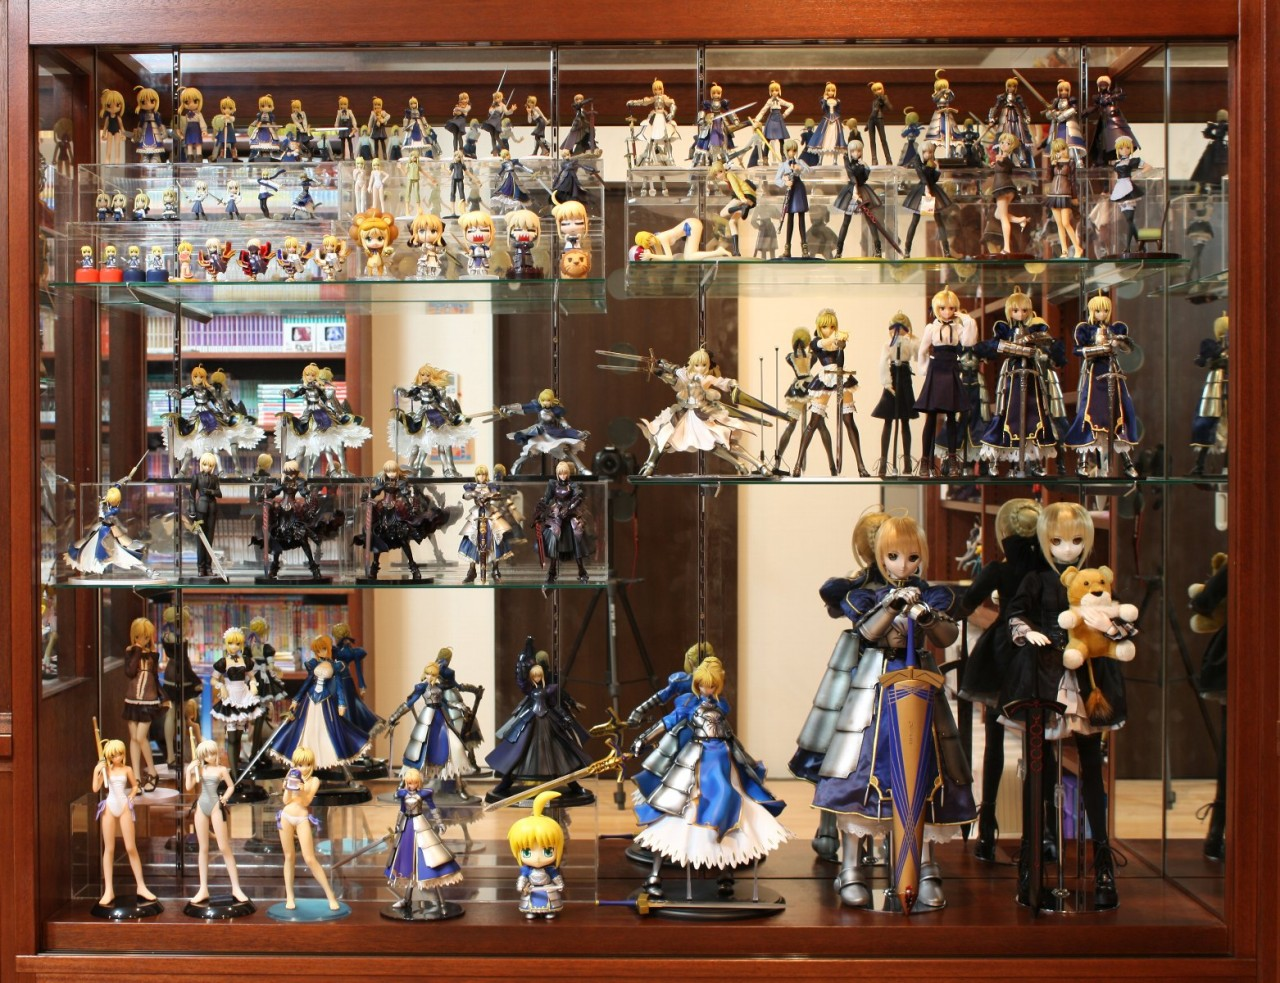 saber collection night stay stay/night